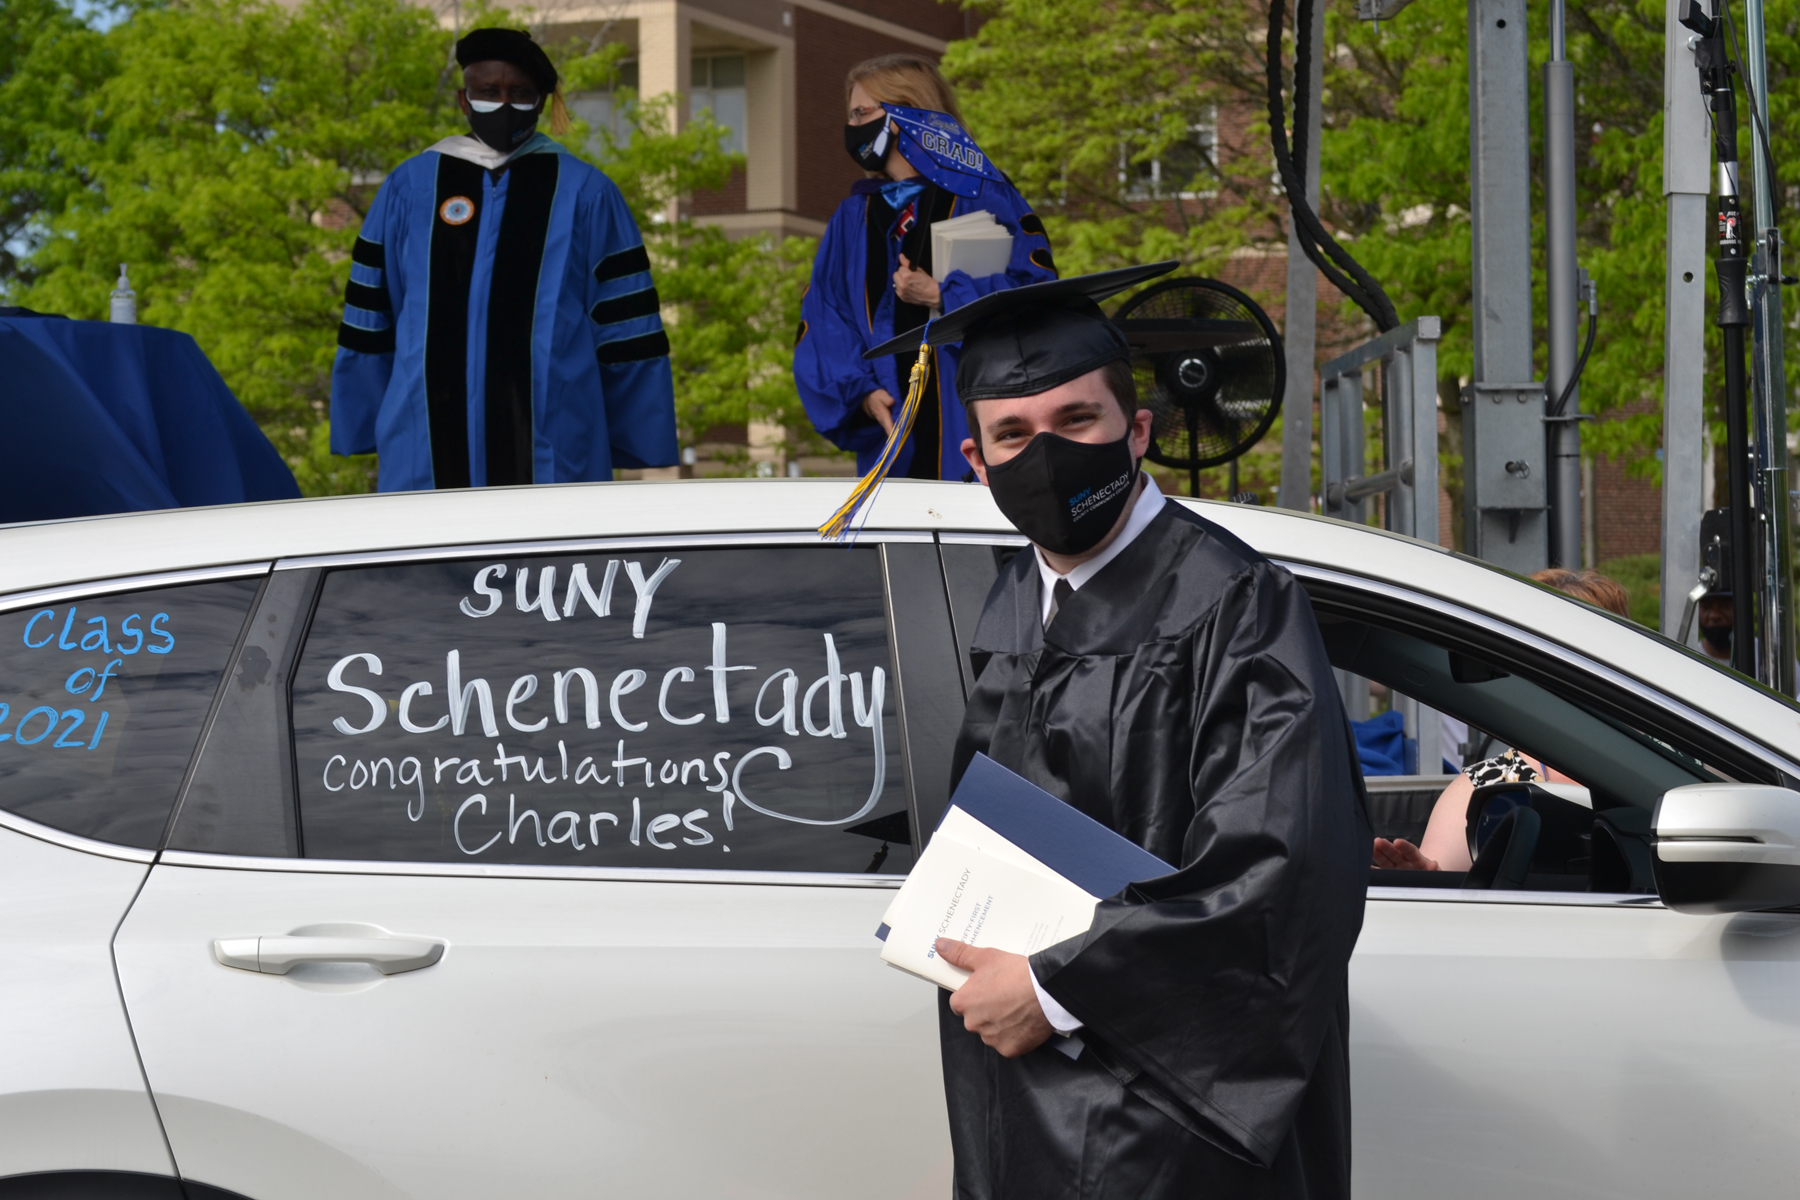 Charles, a graduate, in cap and gown near car.